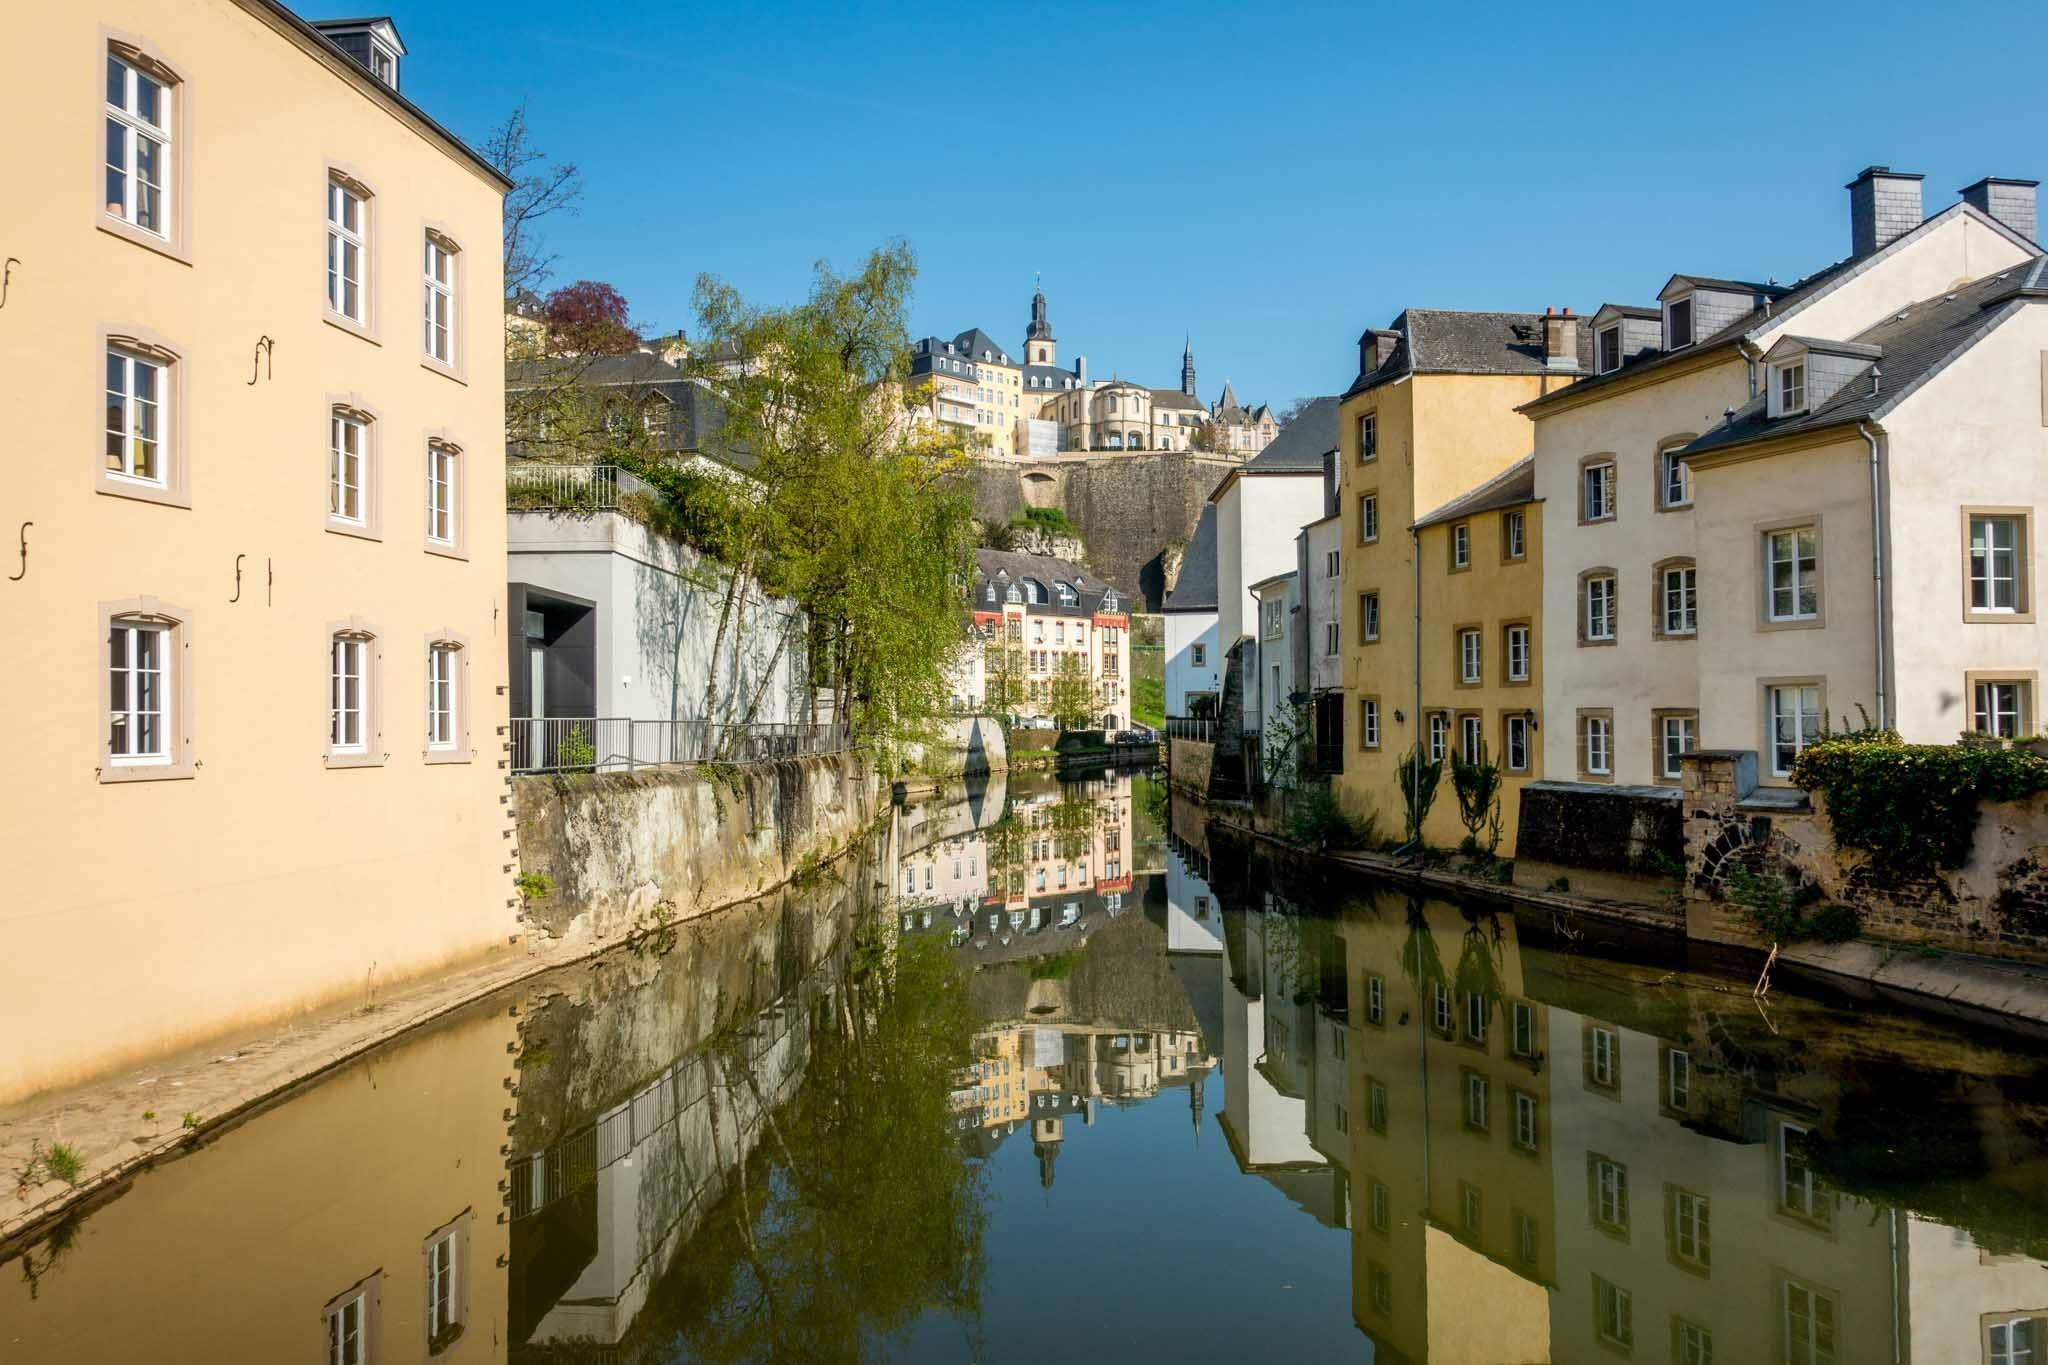 Buildings and river in The Grund